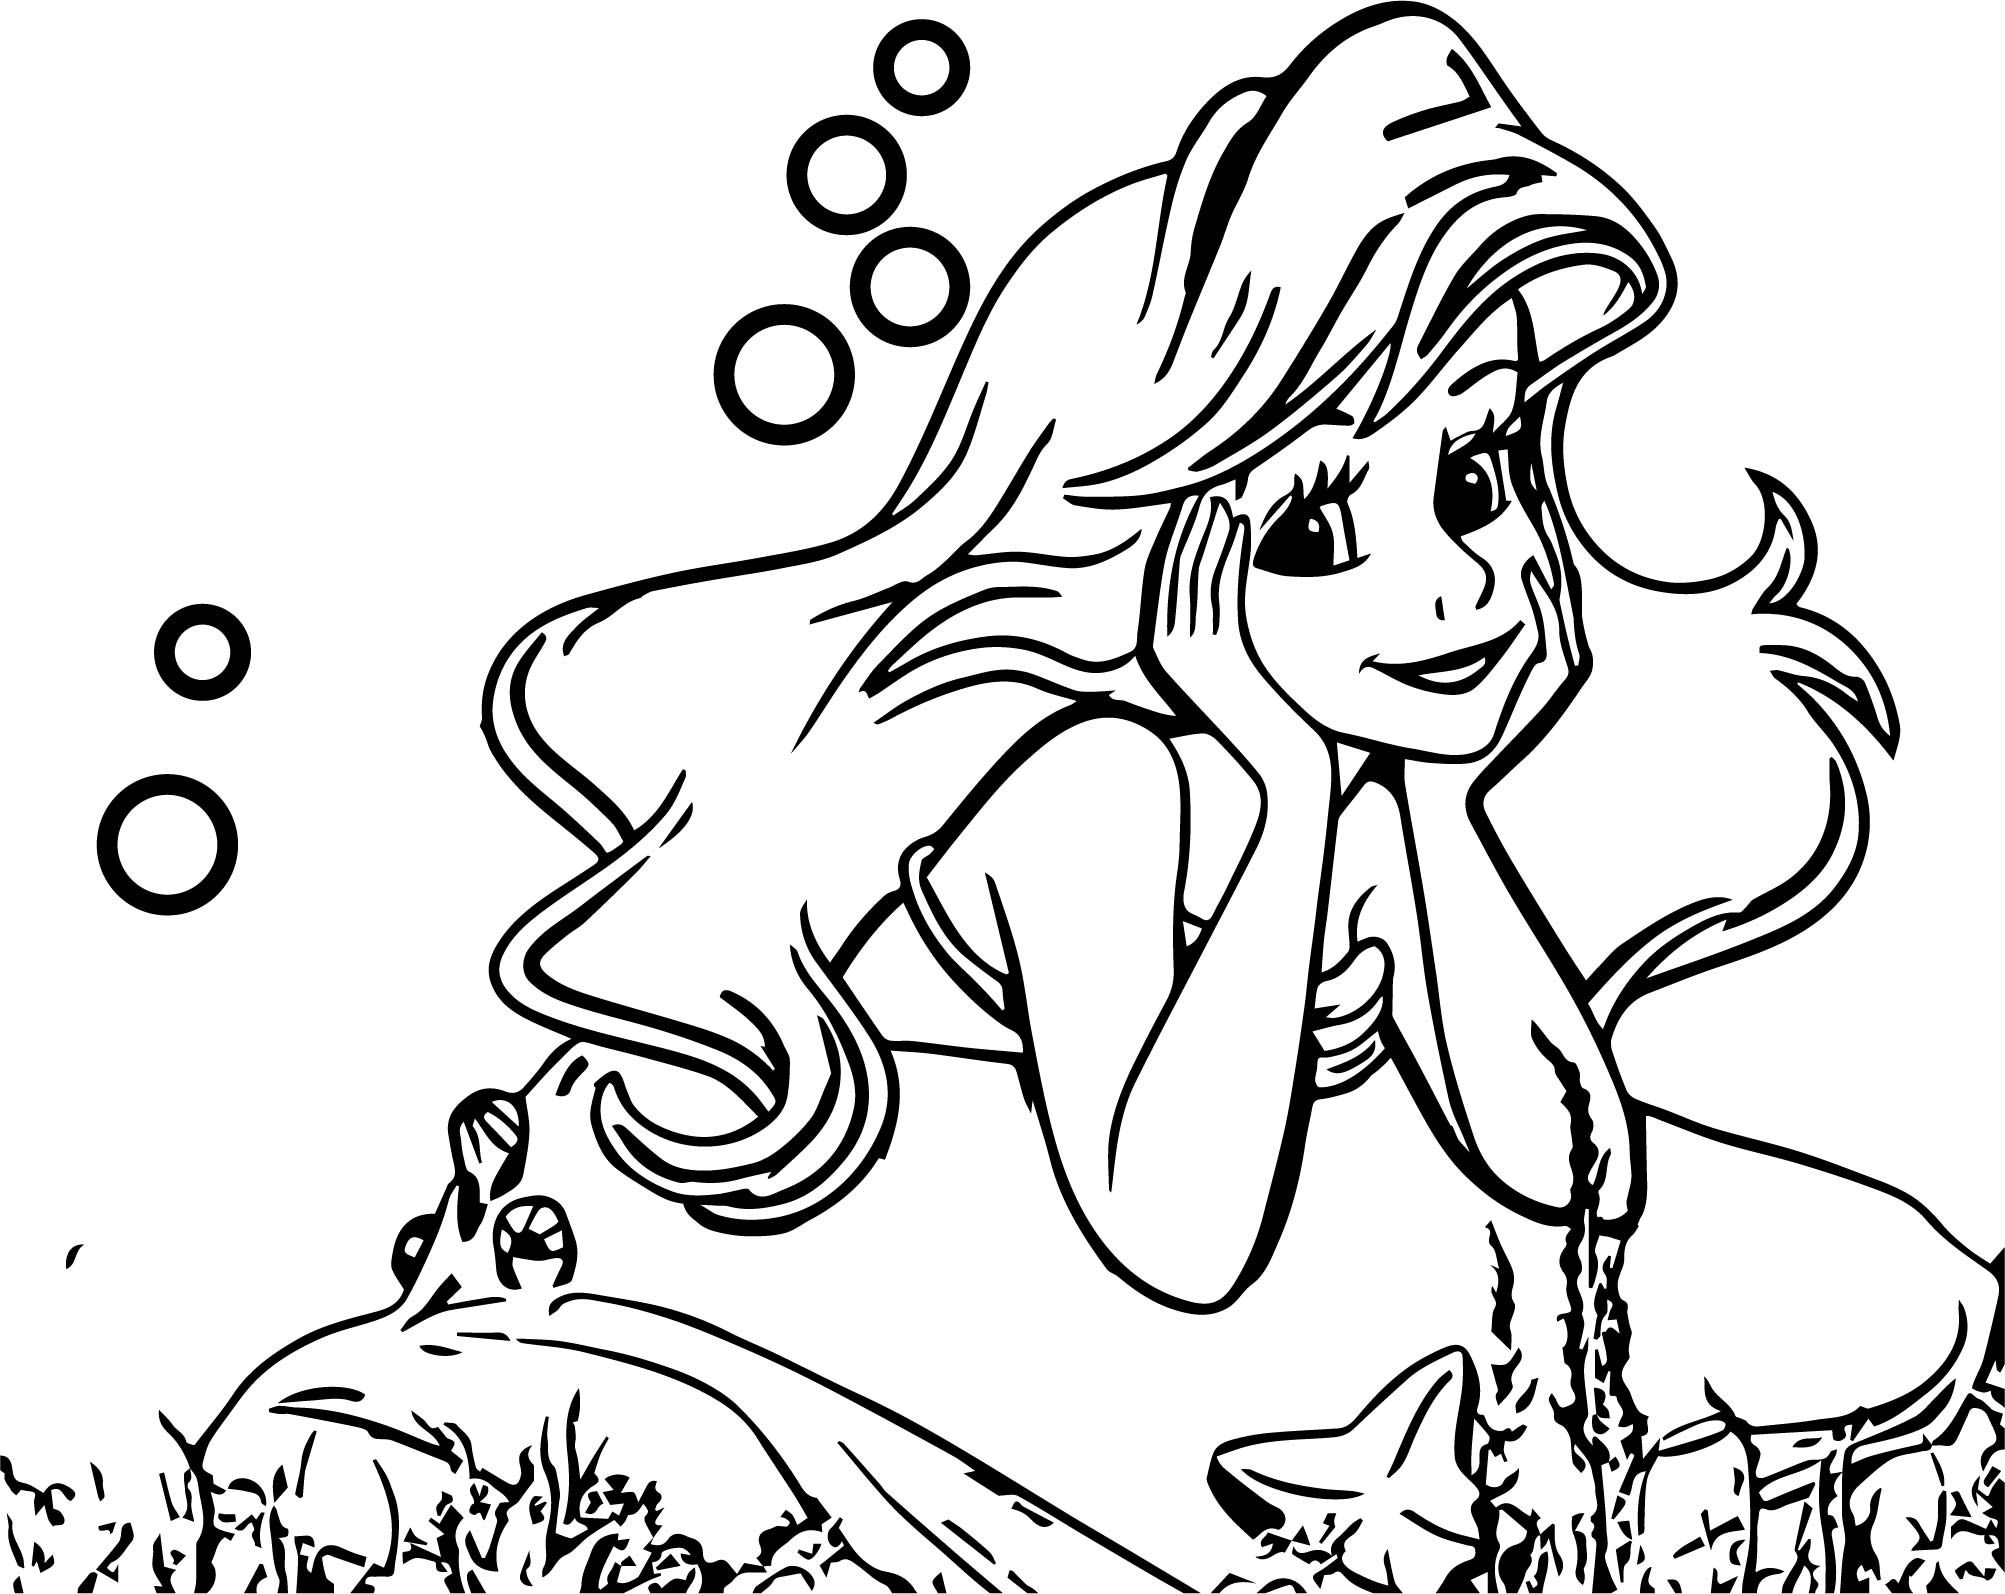 Cool Cute Thinking Ariel Mermaid Coloring Page Mermaid Coloring Pages Mermaid Coloring Book Disney Princess Coloring Pages [ 1594 x 2005 Pixel ]